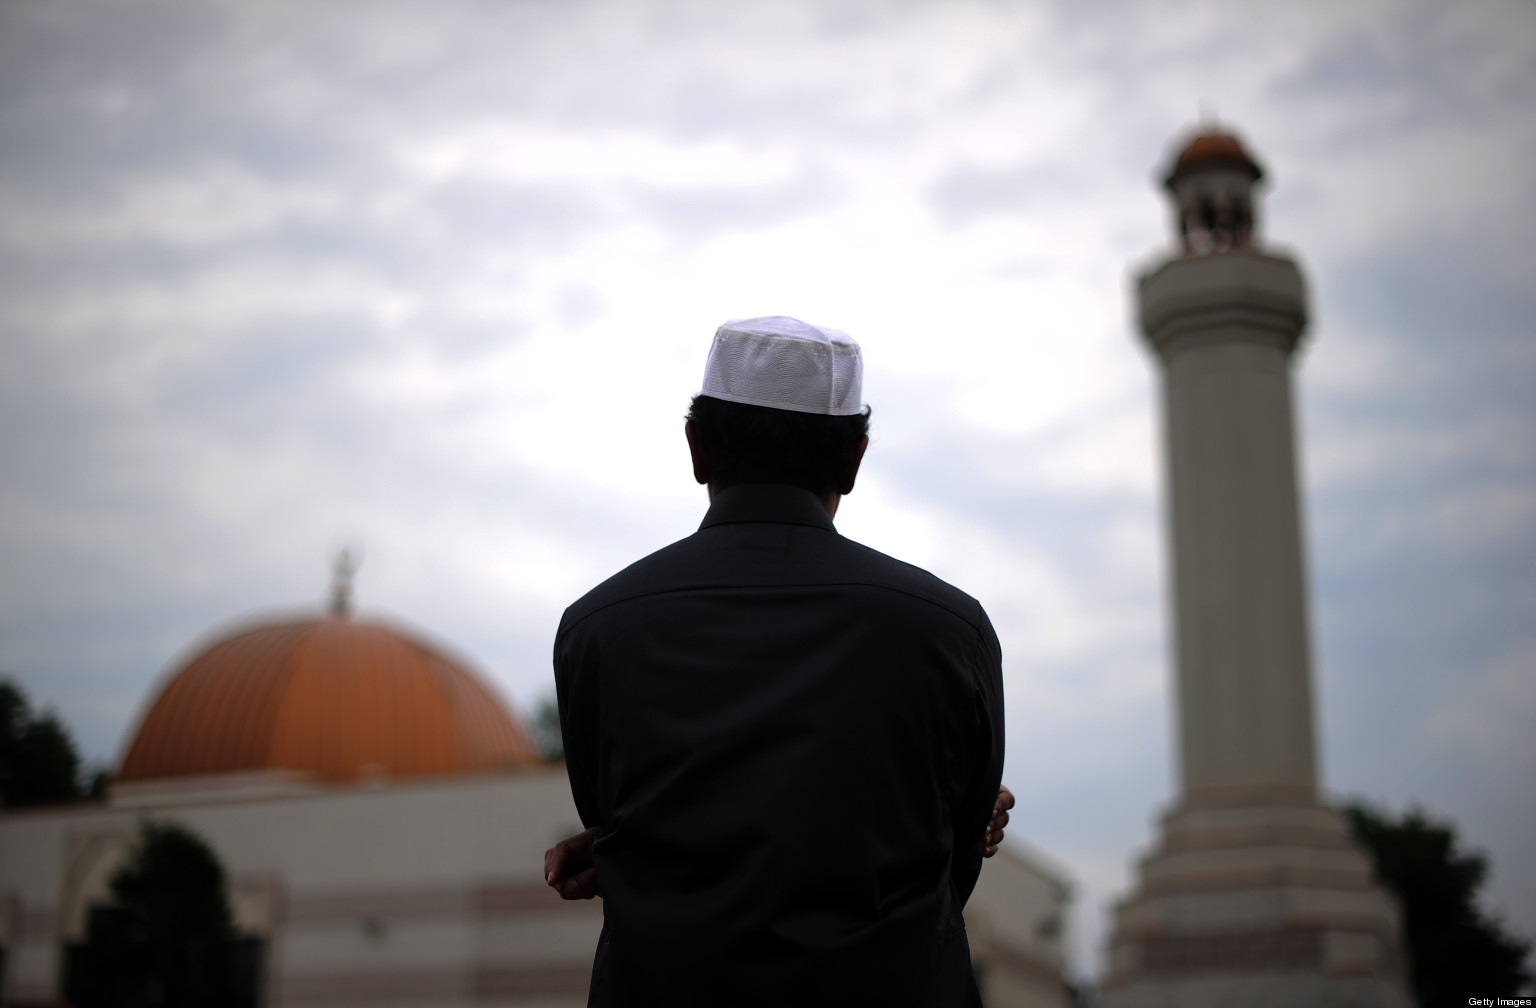 A man looks off at the distance toward a mosque, the image of which is blurred. The man wears a those and a taqiyah.